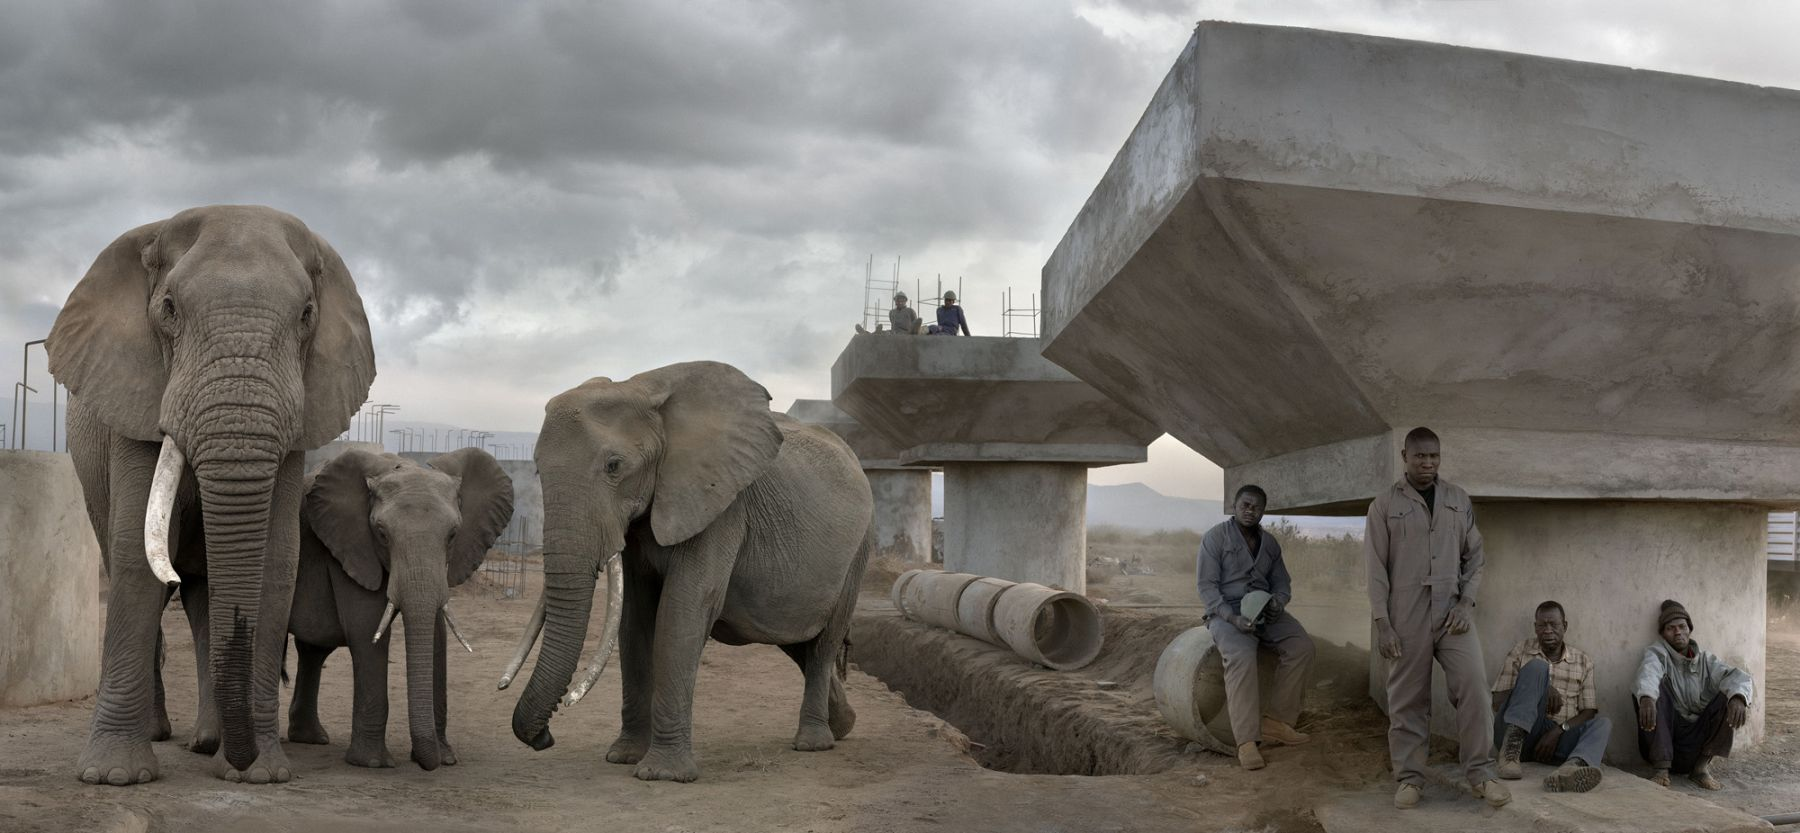 BRIDGE CONSTRUCTION WITH ELEPHANTS & WORKERS IN DAY, 2018,